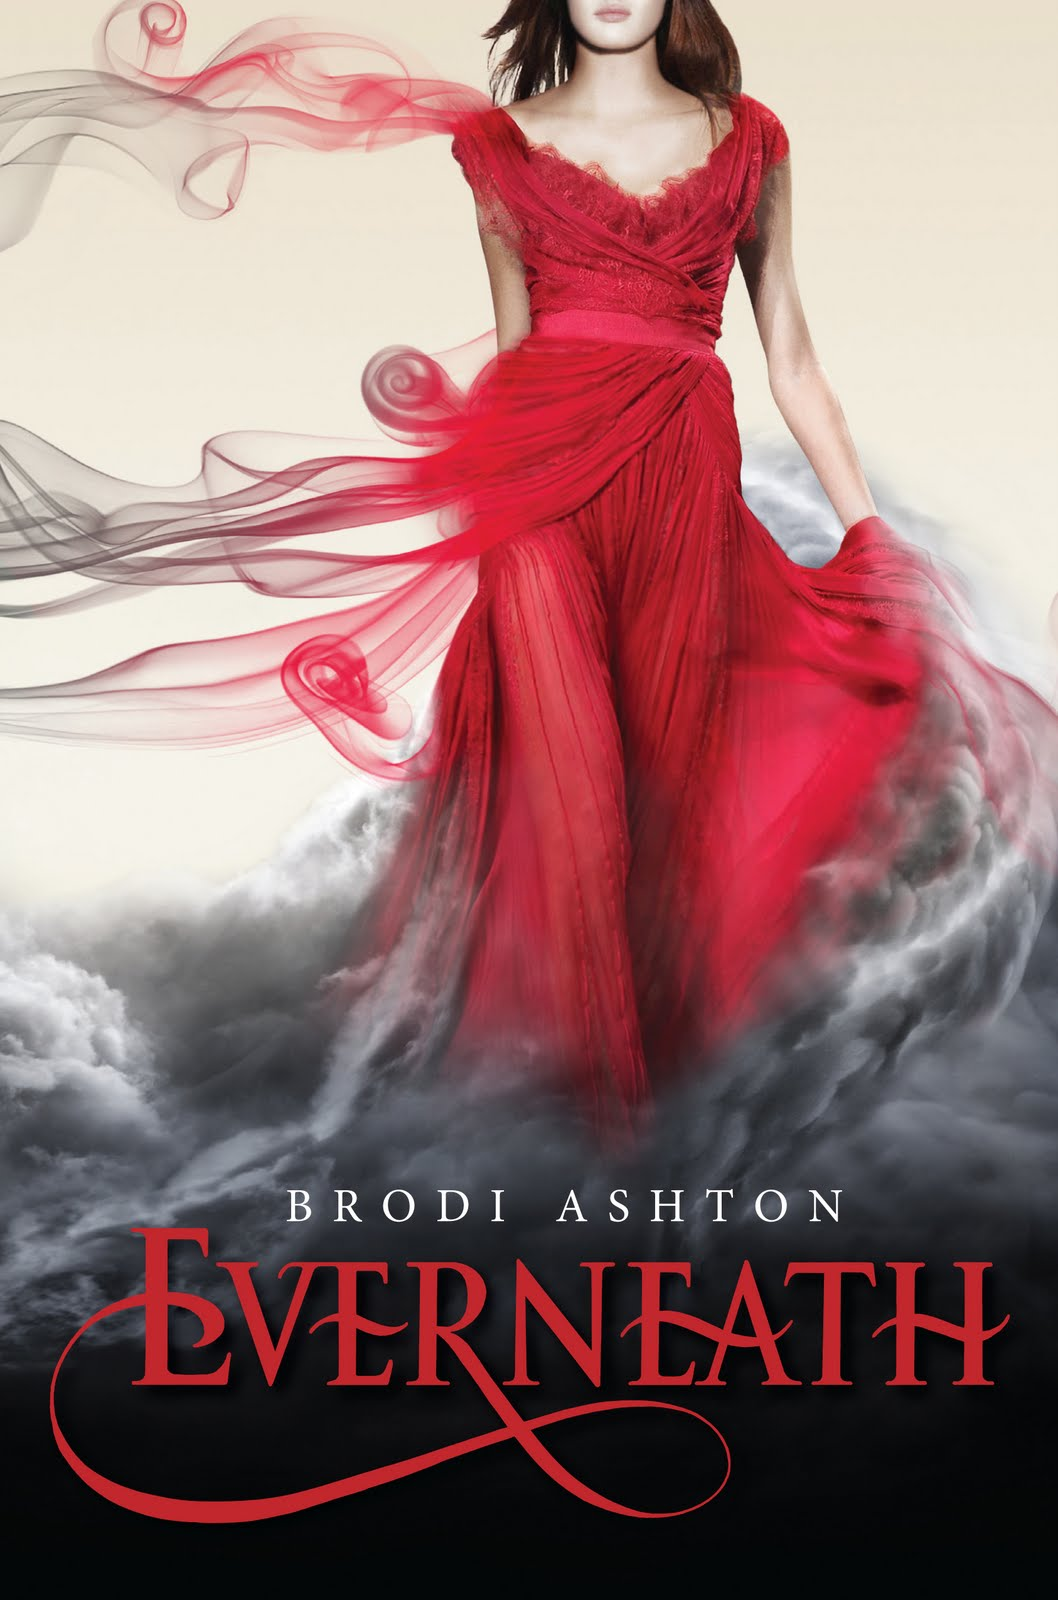 Image result for everneath book cover